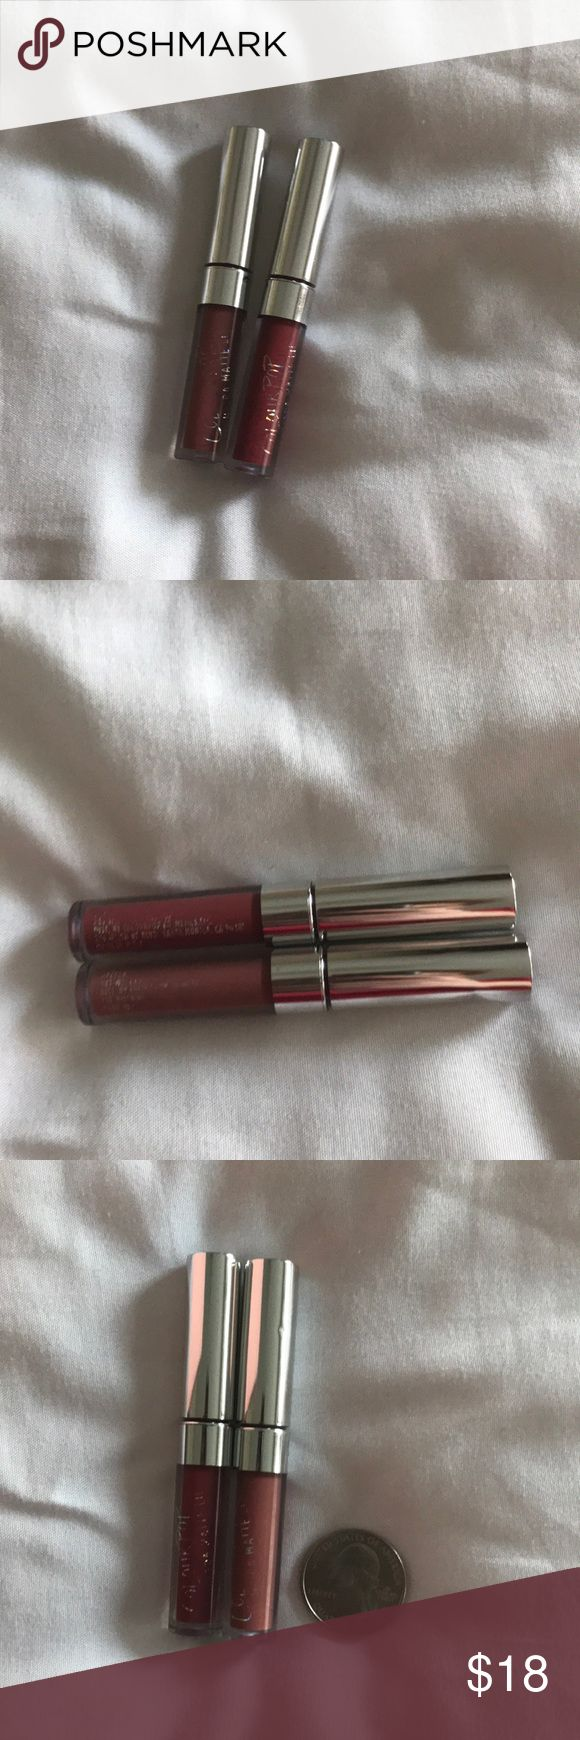 Colourpop Matte Lipsticks 2 Colourpop Matte Lipsticks  'Tulle' and 'Deeper' NWOB  Never used or swatched  Wear is from being stored together and running against each other  If you have any questions please ask!  I accept most offers! Bundle with other items for my closet for an extra discount! Colourpop Makeup Lipstick